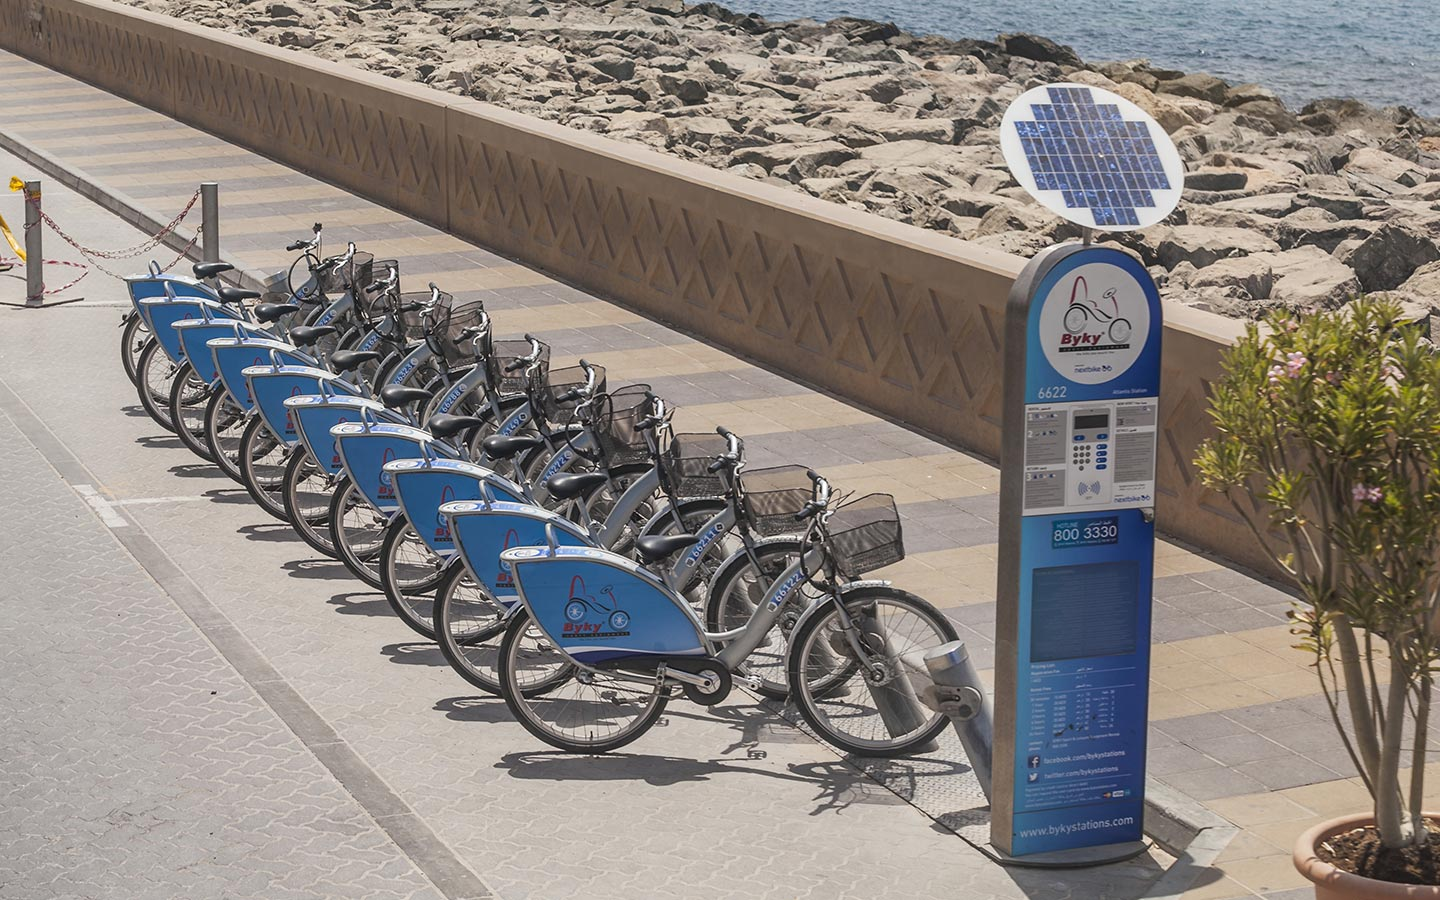 The byky bike rental station on Palm Jumeirah